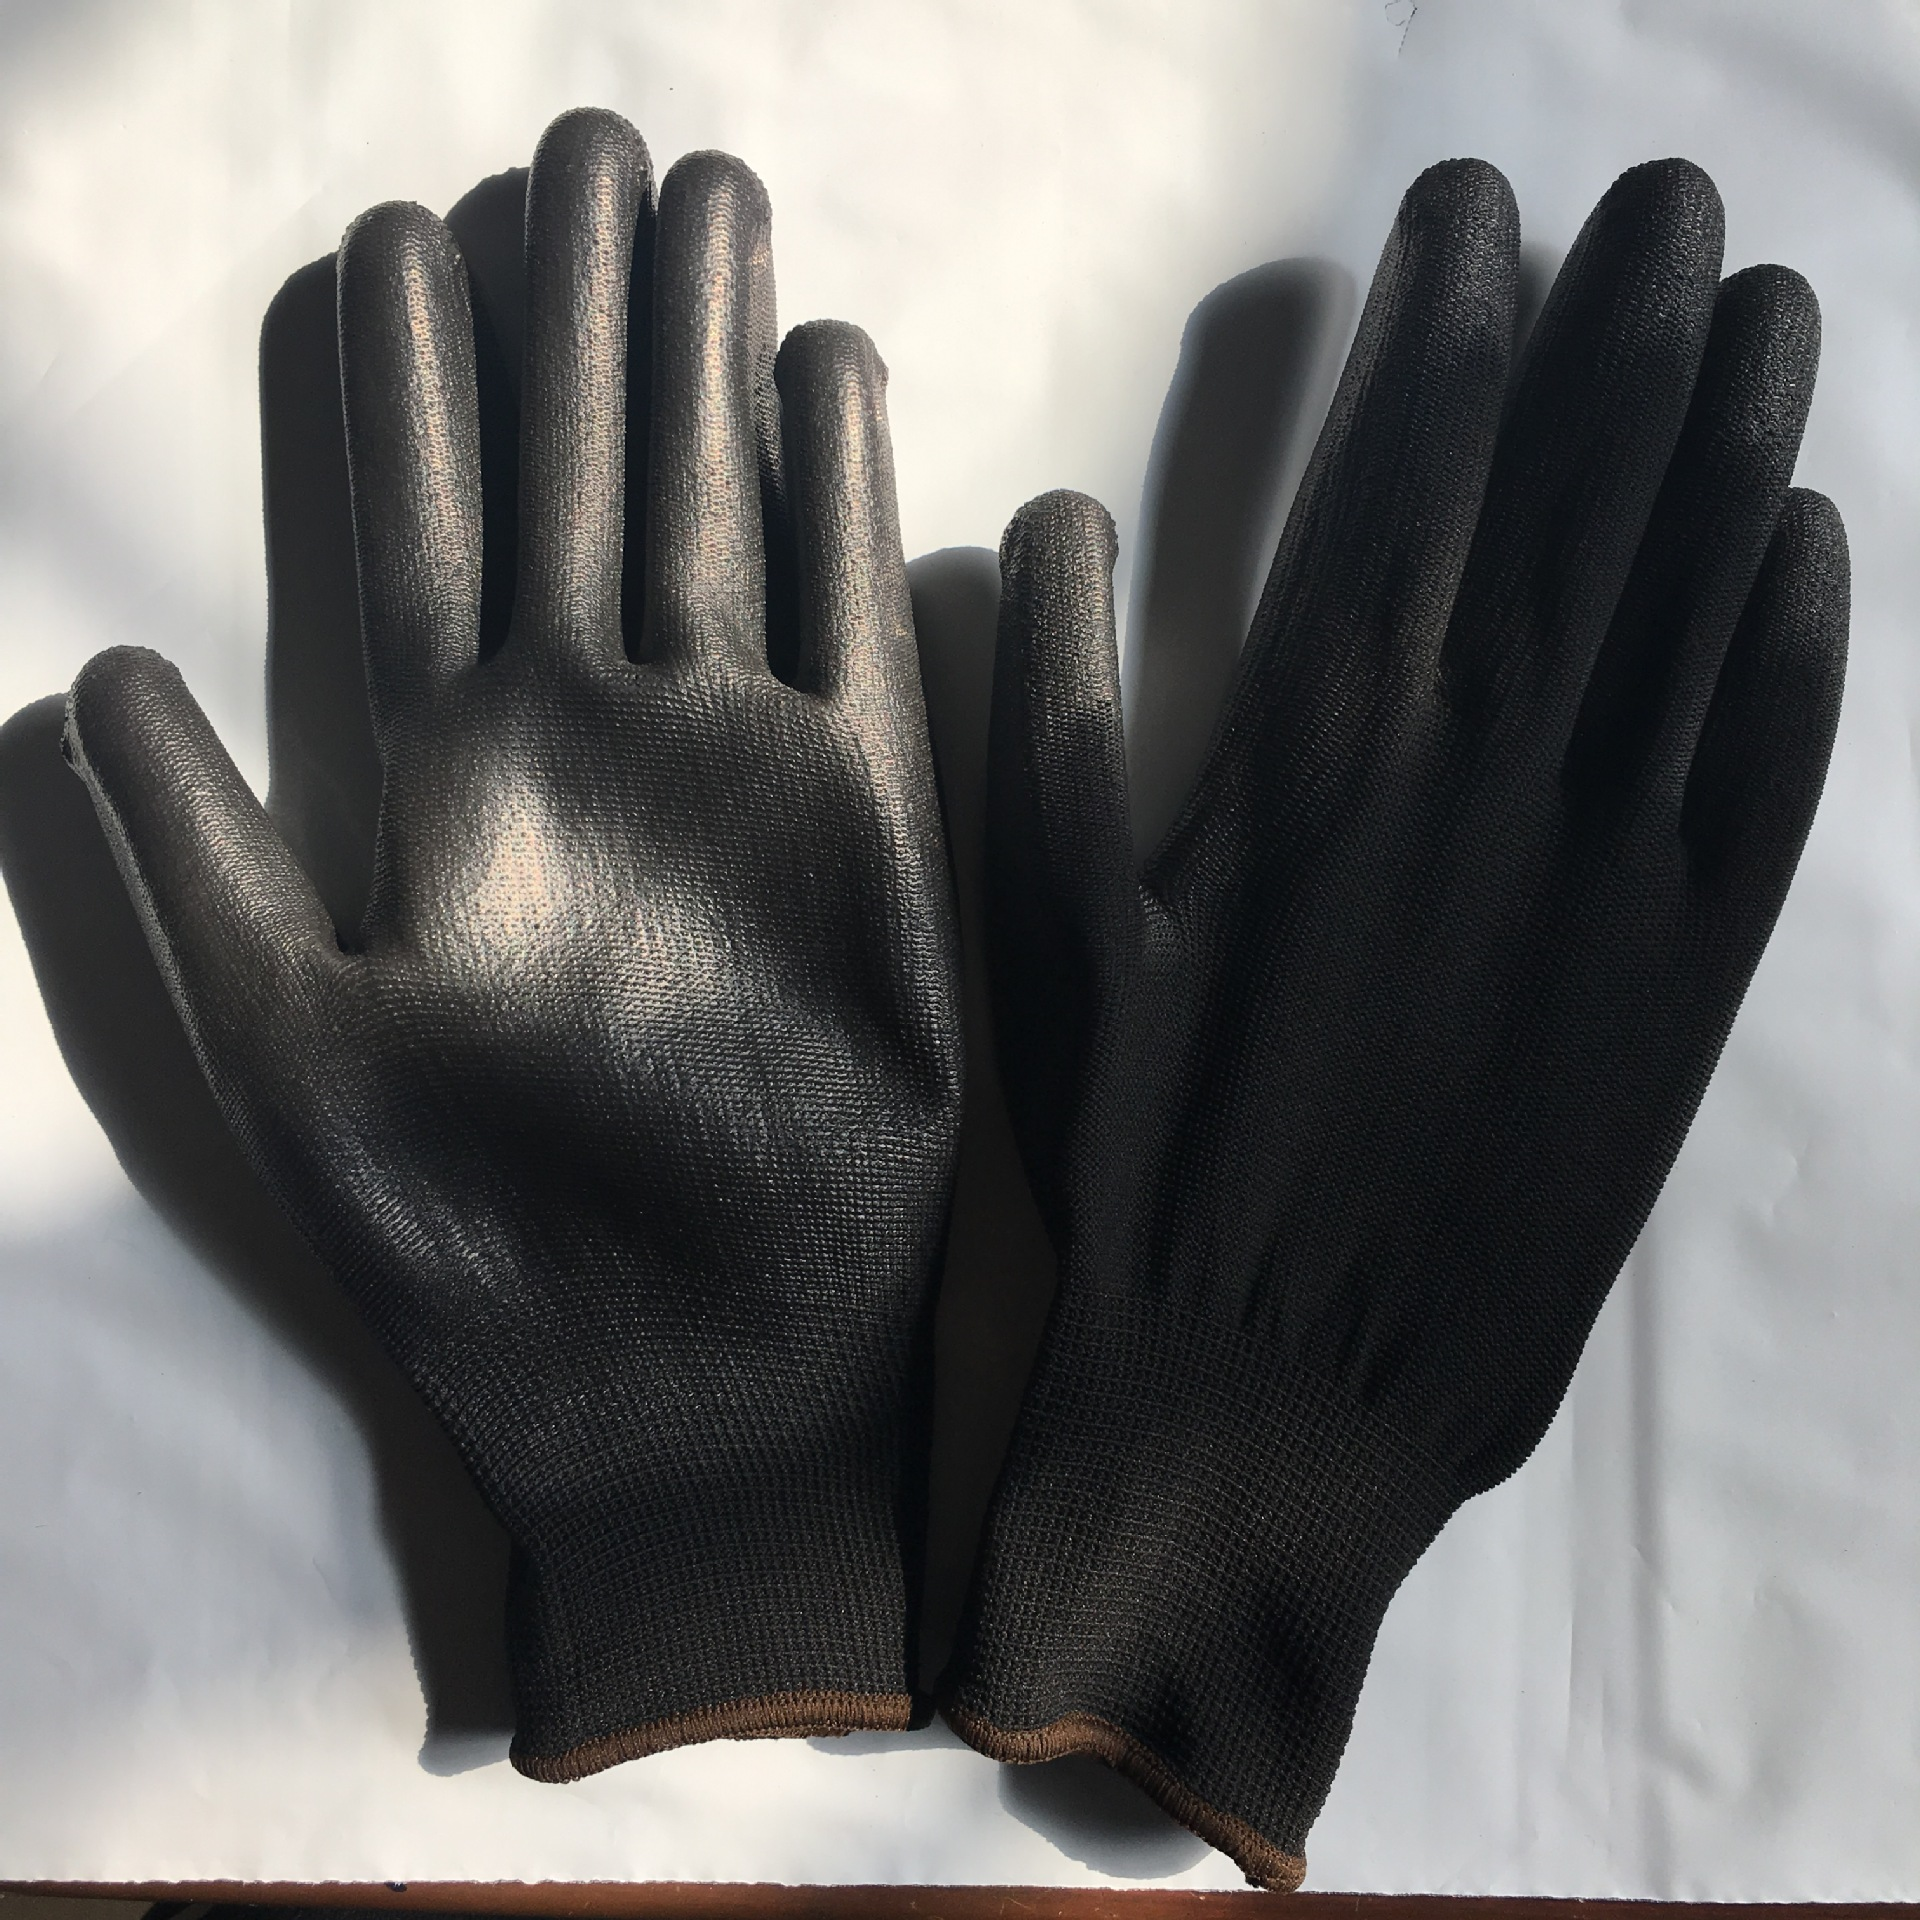 Hot Sales Black And White With Pattern Polyurethane/Nylon Safe Anti-static Paintcoat Gardening Gloves Nylon Gloves